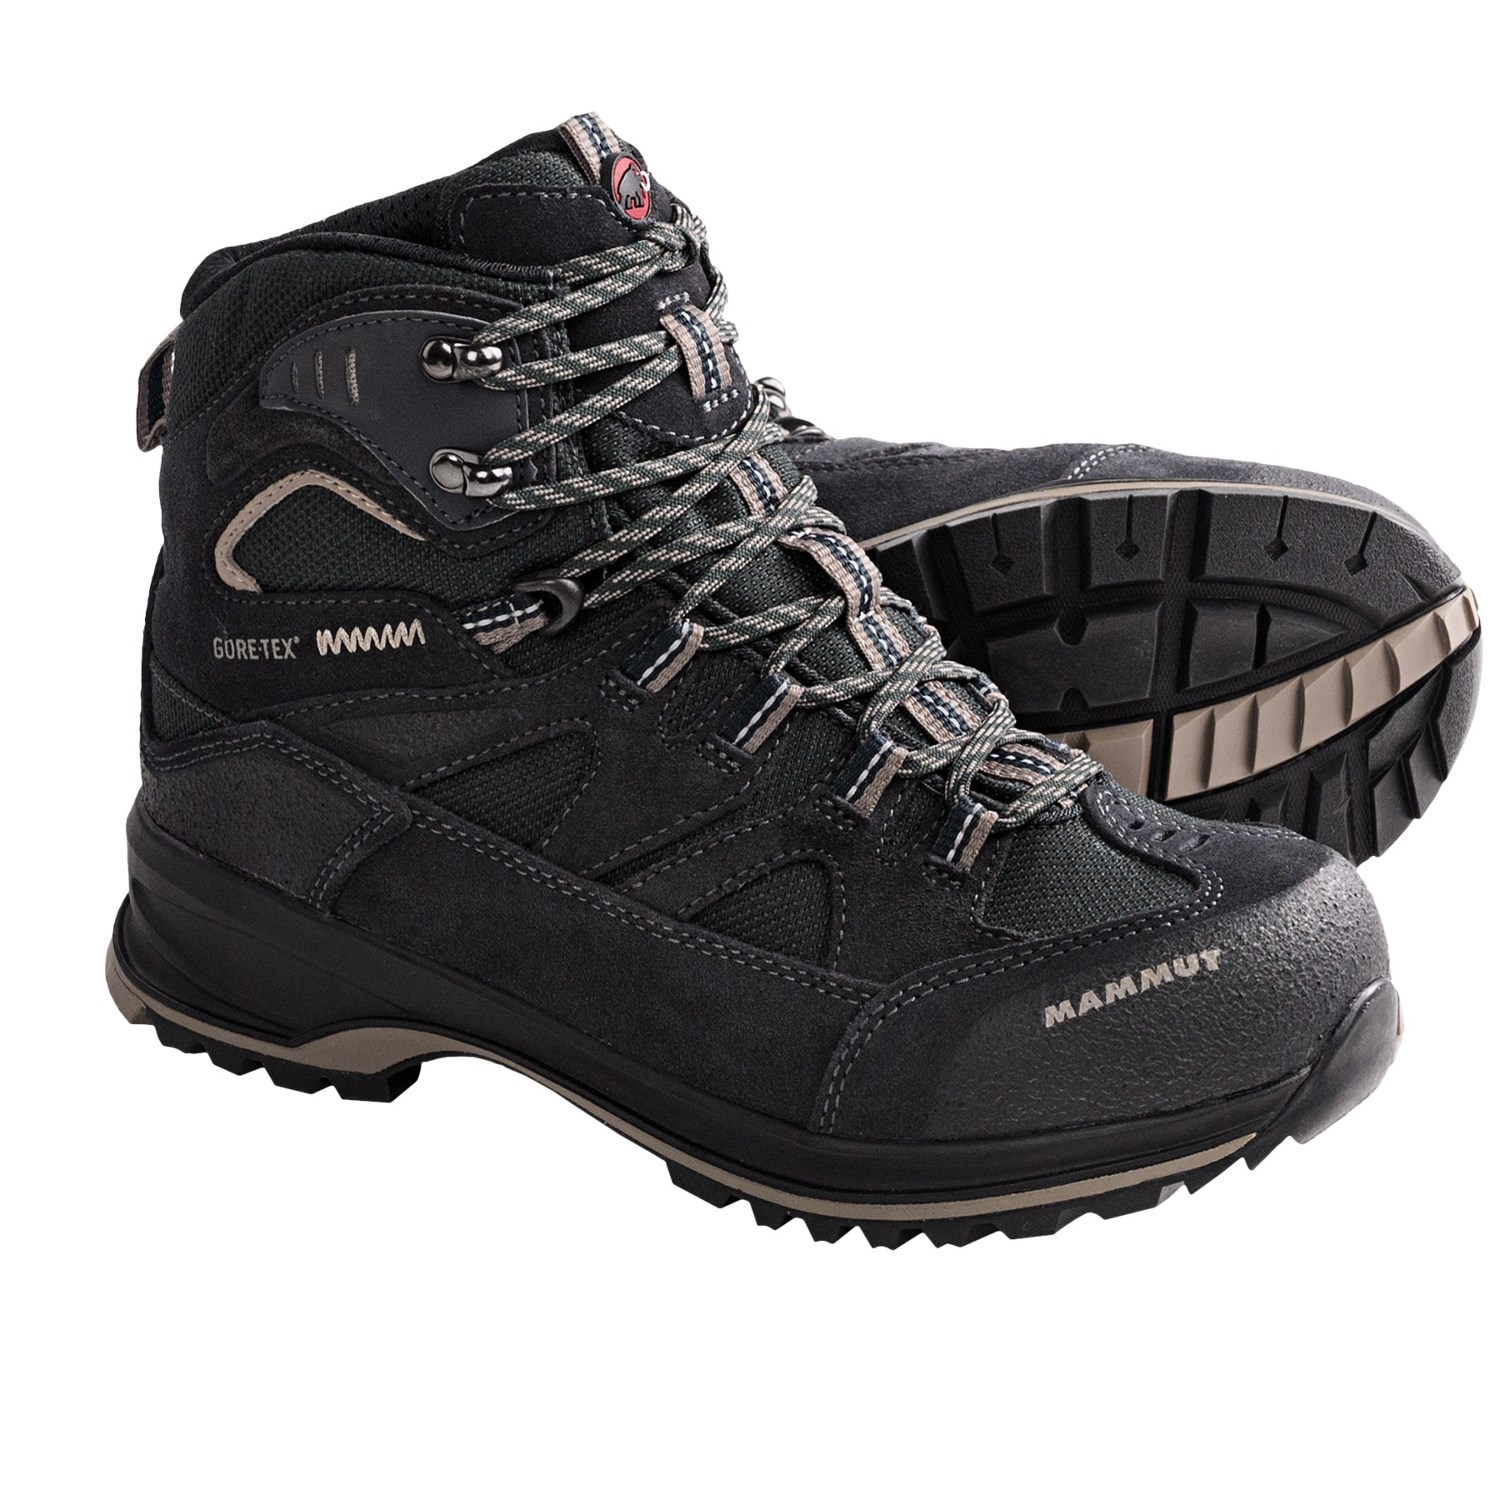 Unique The Salomon X Ultra Mid 3 GTX Is The Perfect Dayhiker For Women Based Entirely On Itsallaround Comfort, Short Breakin Time, And Feather Weight The Leather Upper Features GoreTex Which Provides Complete Waterproof Protection Salomon